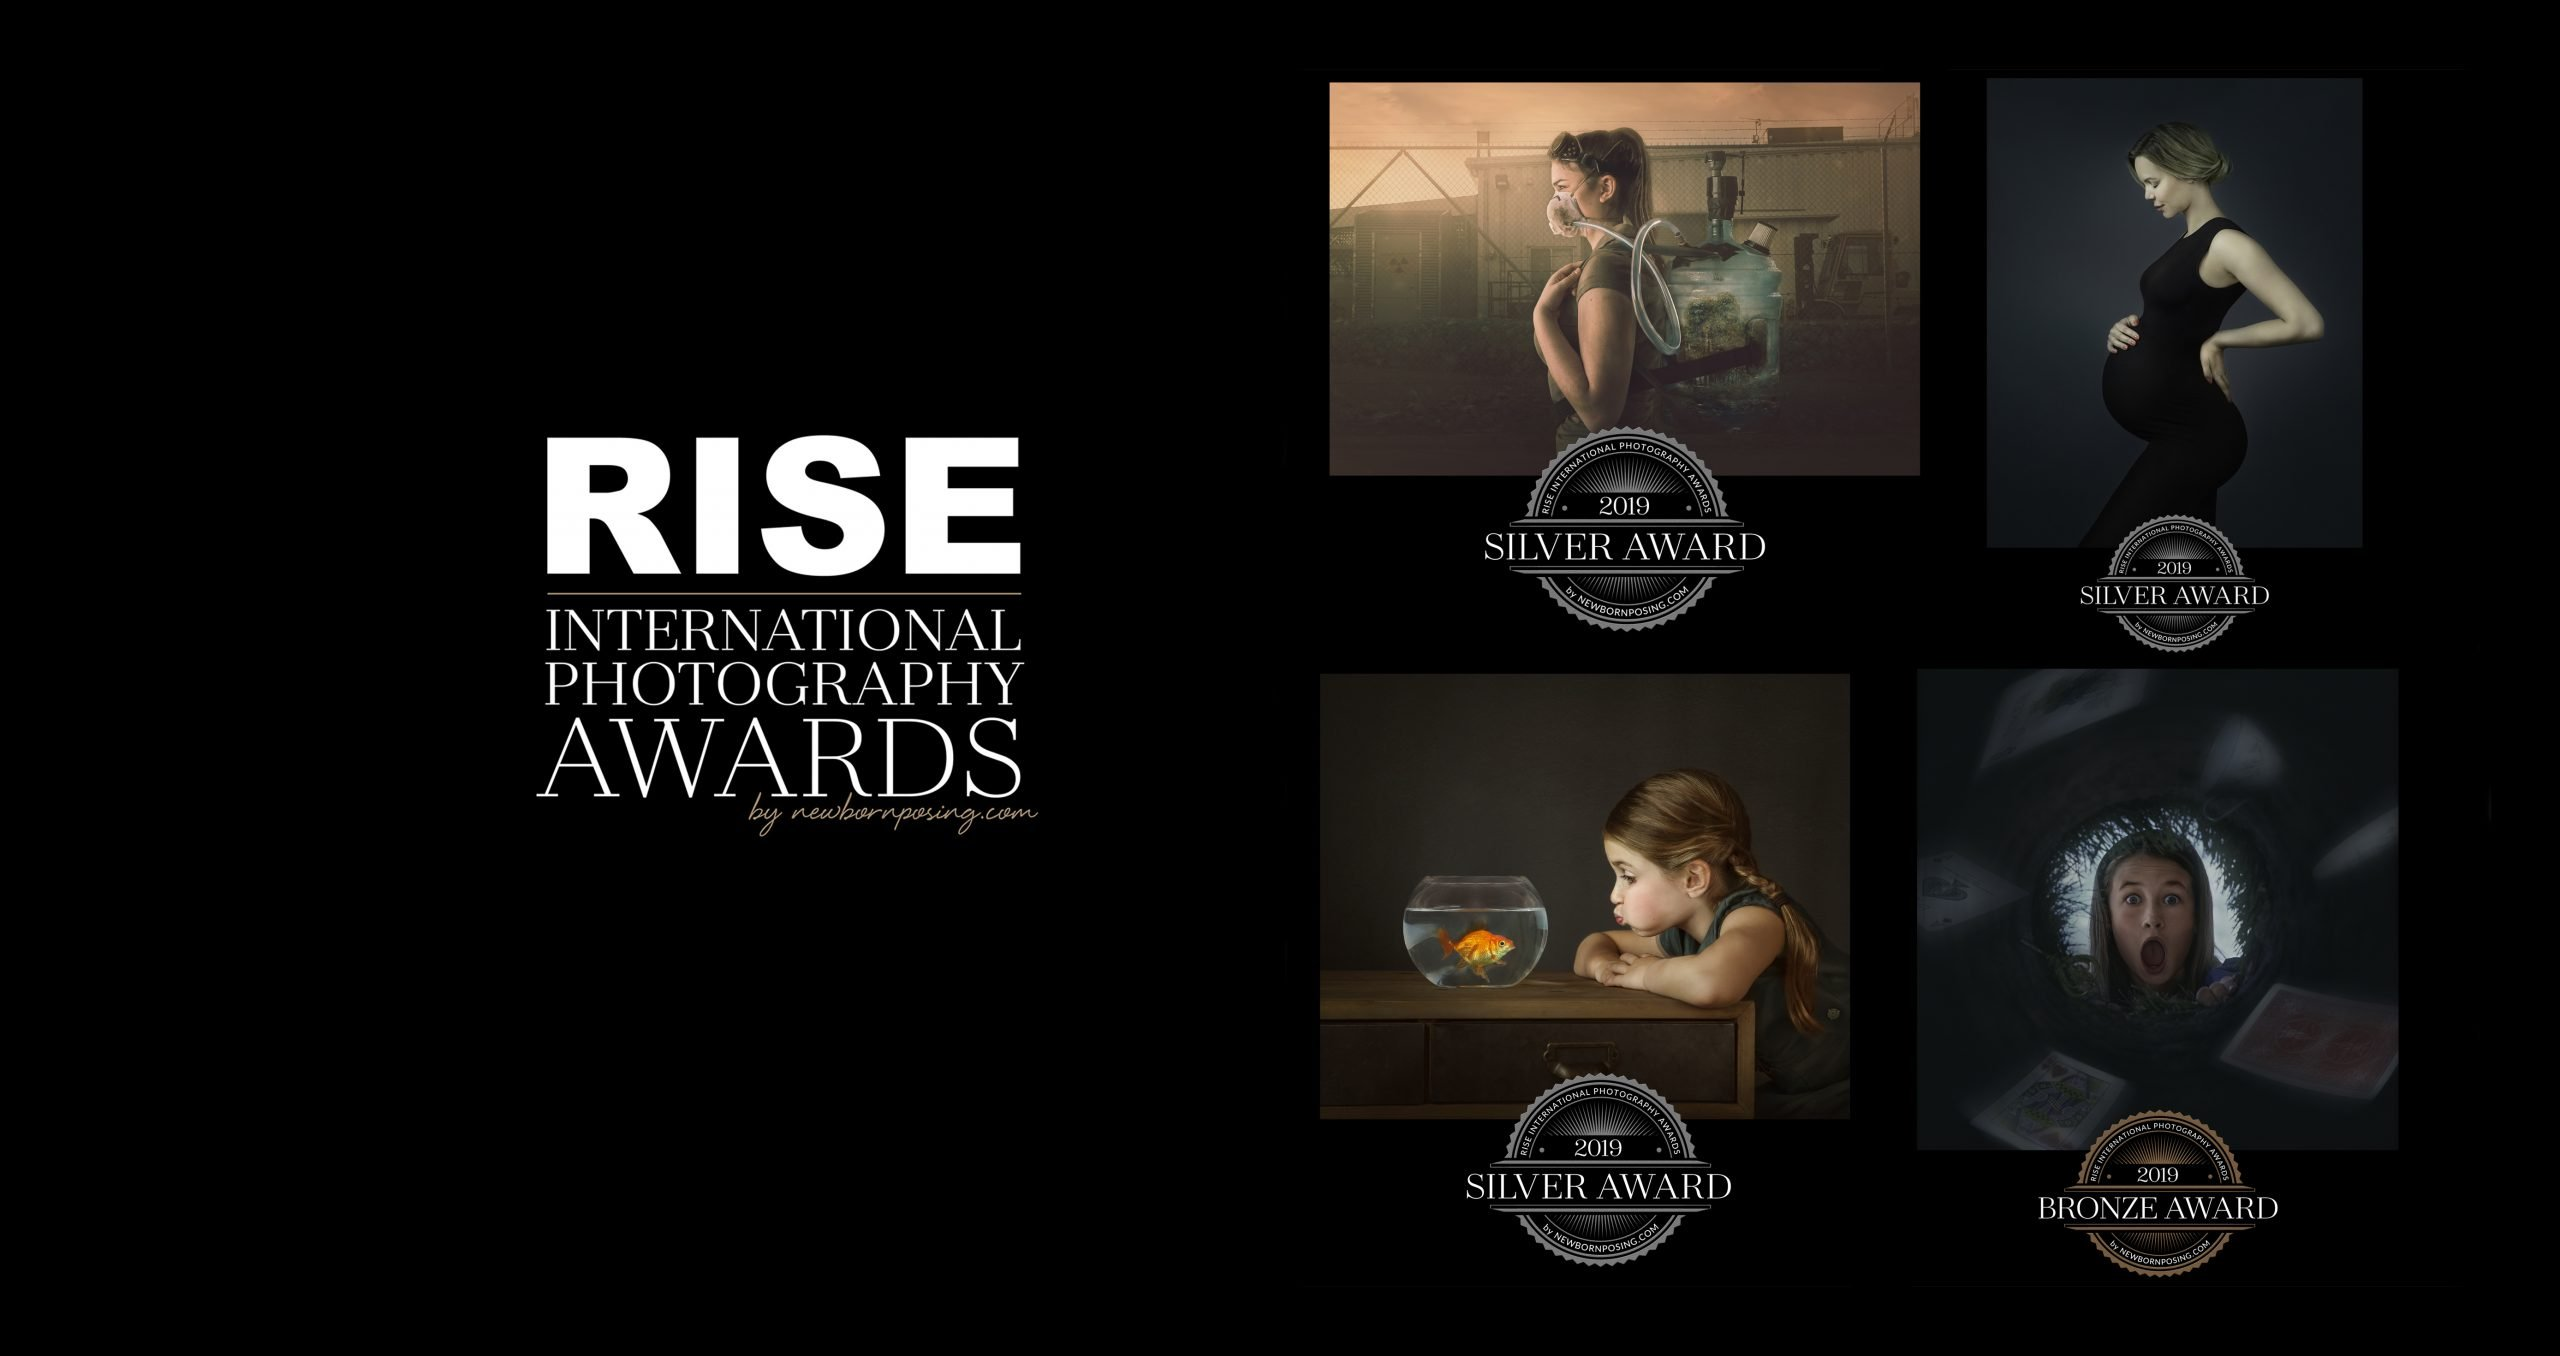 Rise International Photography Awards - Alana Lee Photography